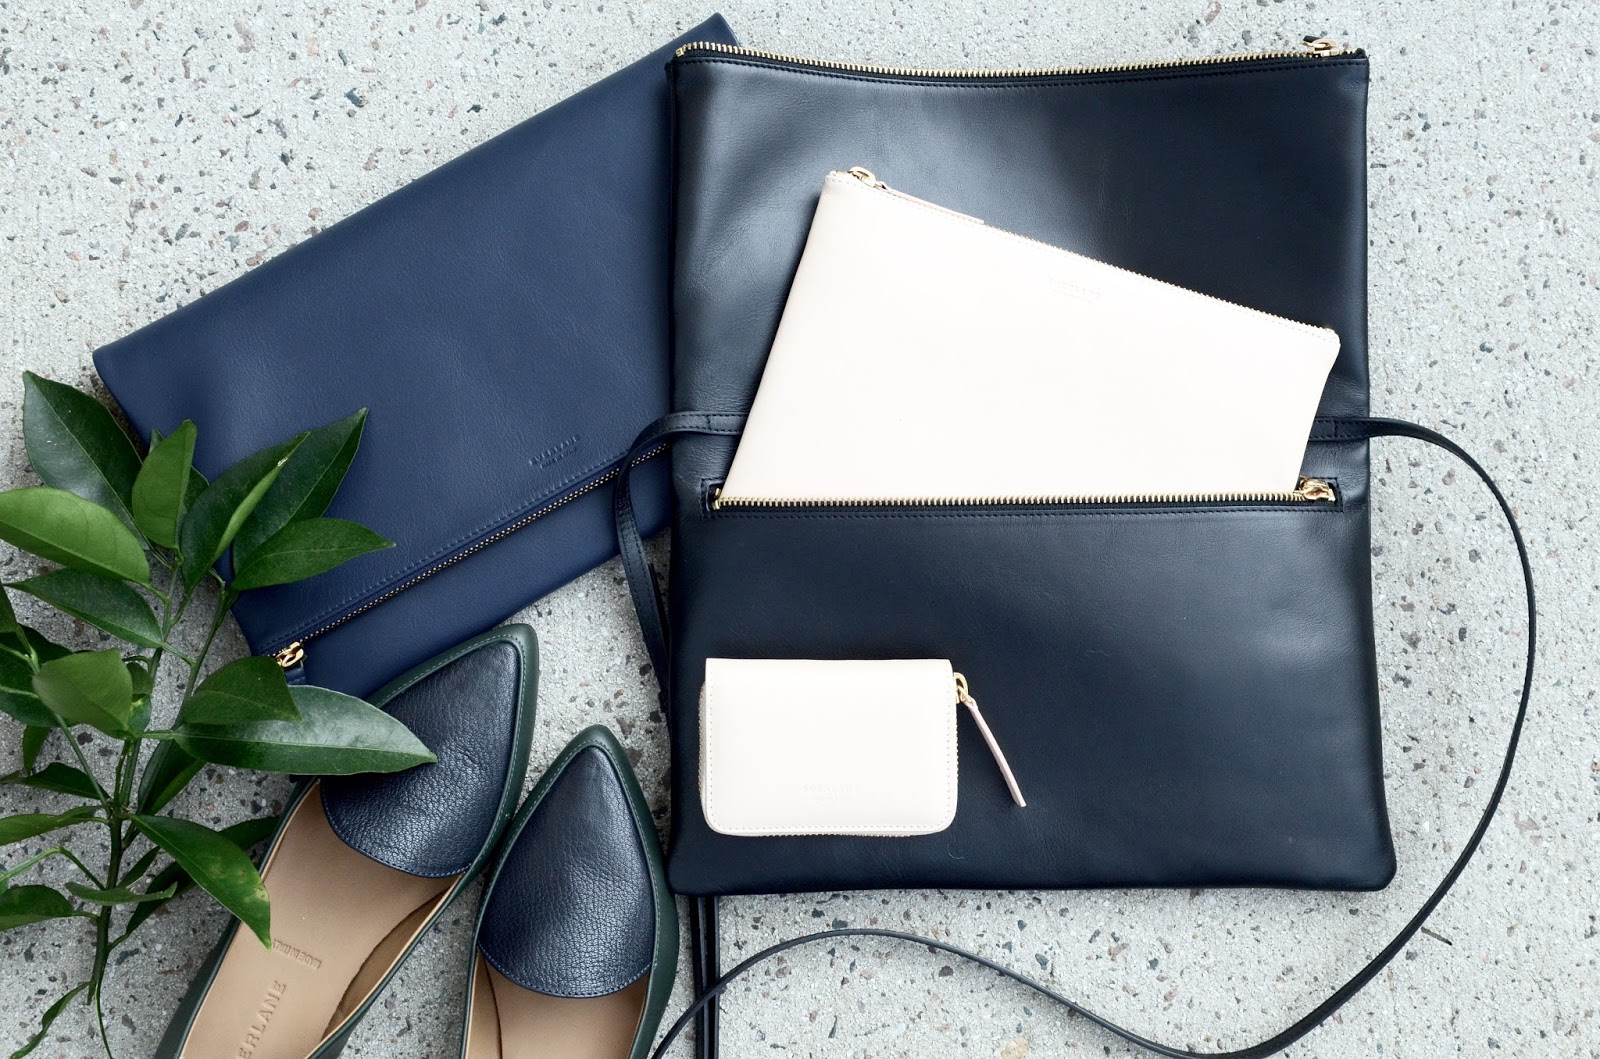 Everlane foldover crossbody foldover pouch mini zip wallet and pouch photos review